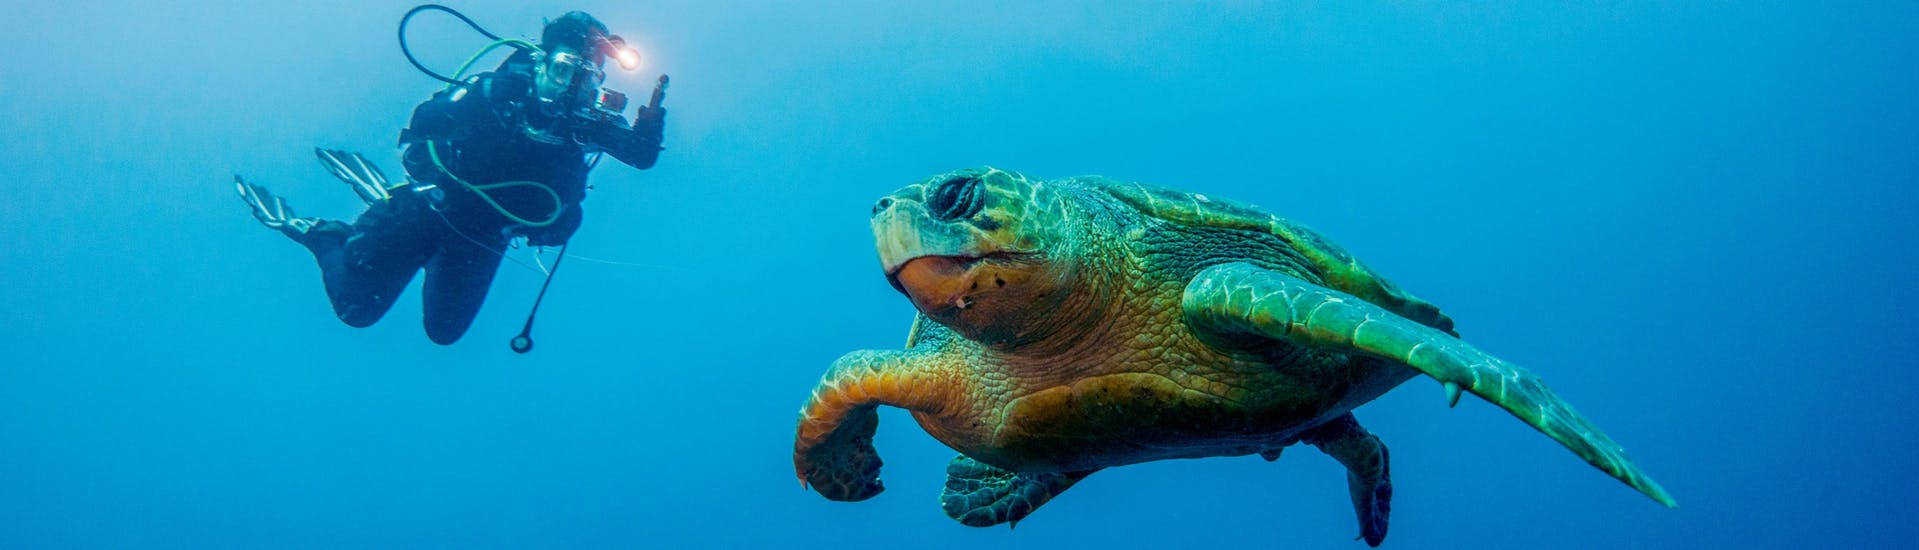 A scuba diver is taking a photograph of a turtle while scuba diving in KwaZulu-Natal.